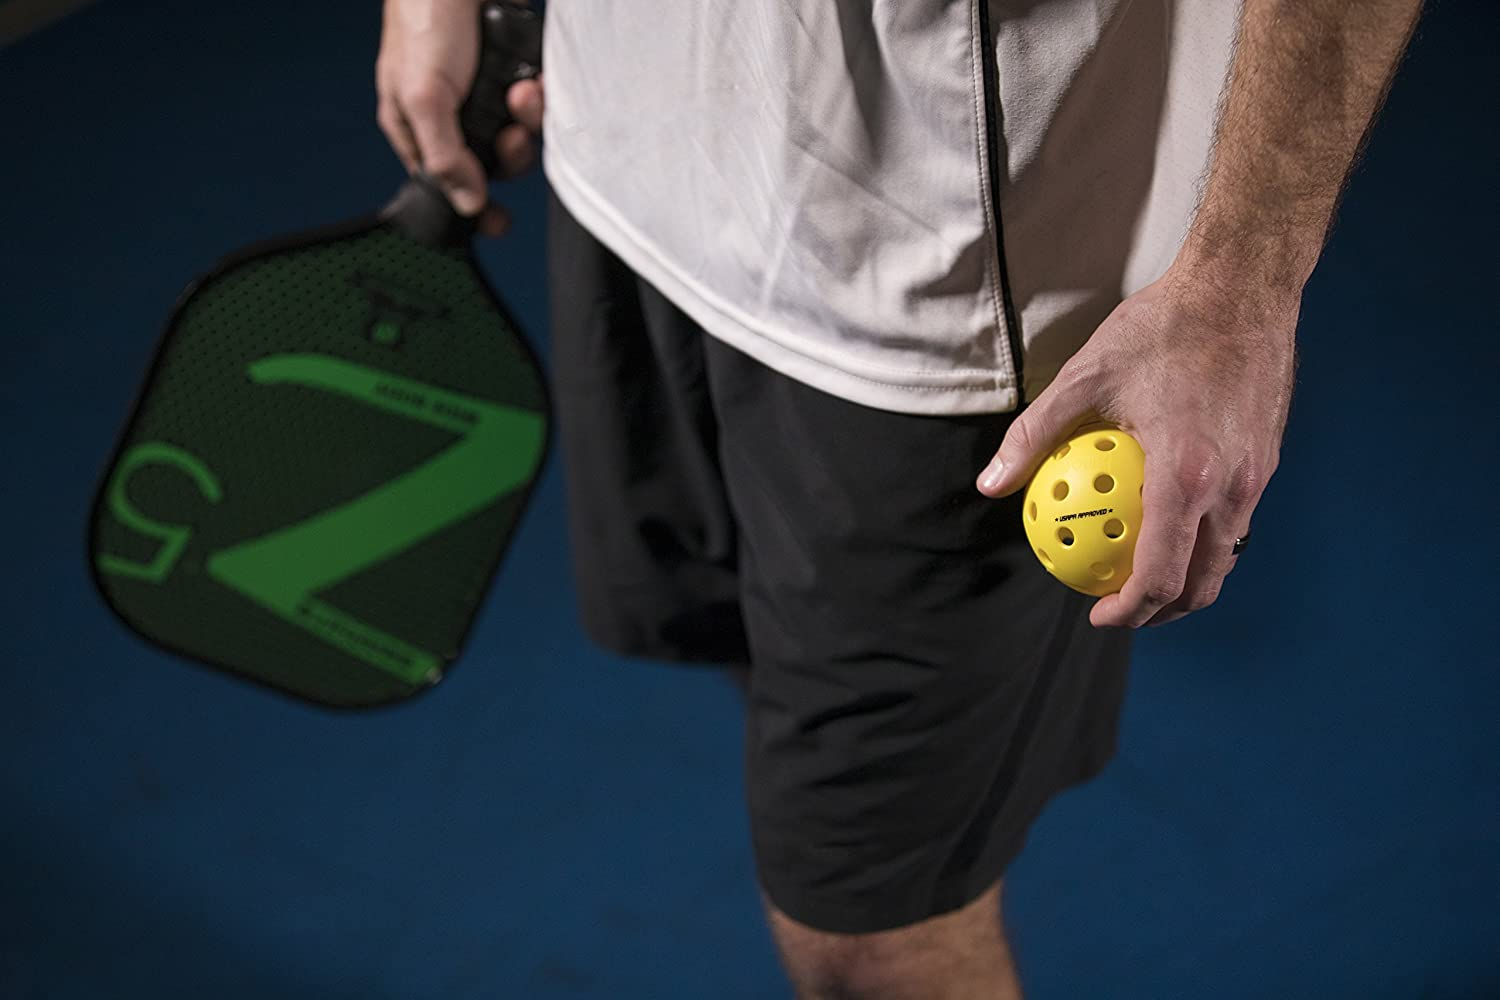 Amazon.com: Onix Fuse - Pelotas de Pickleball para ...